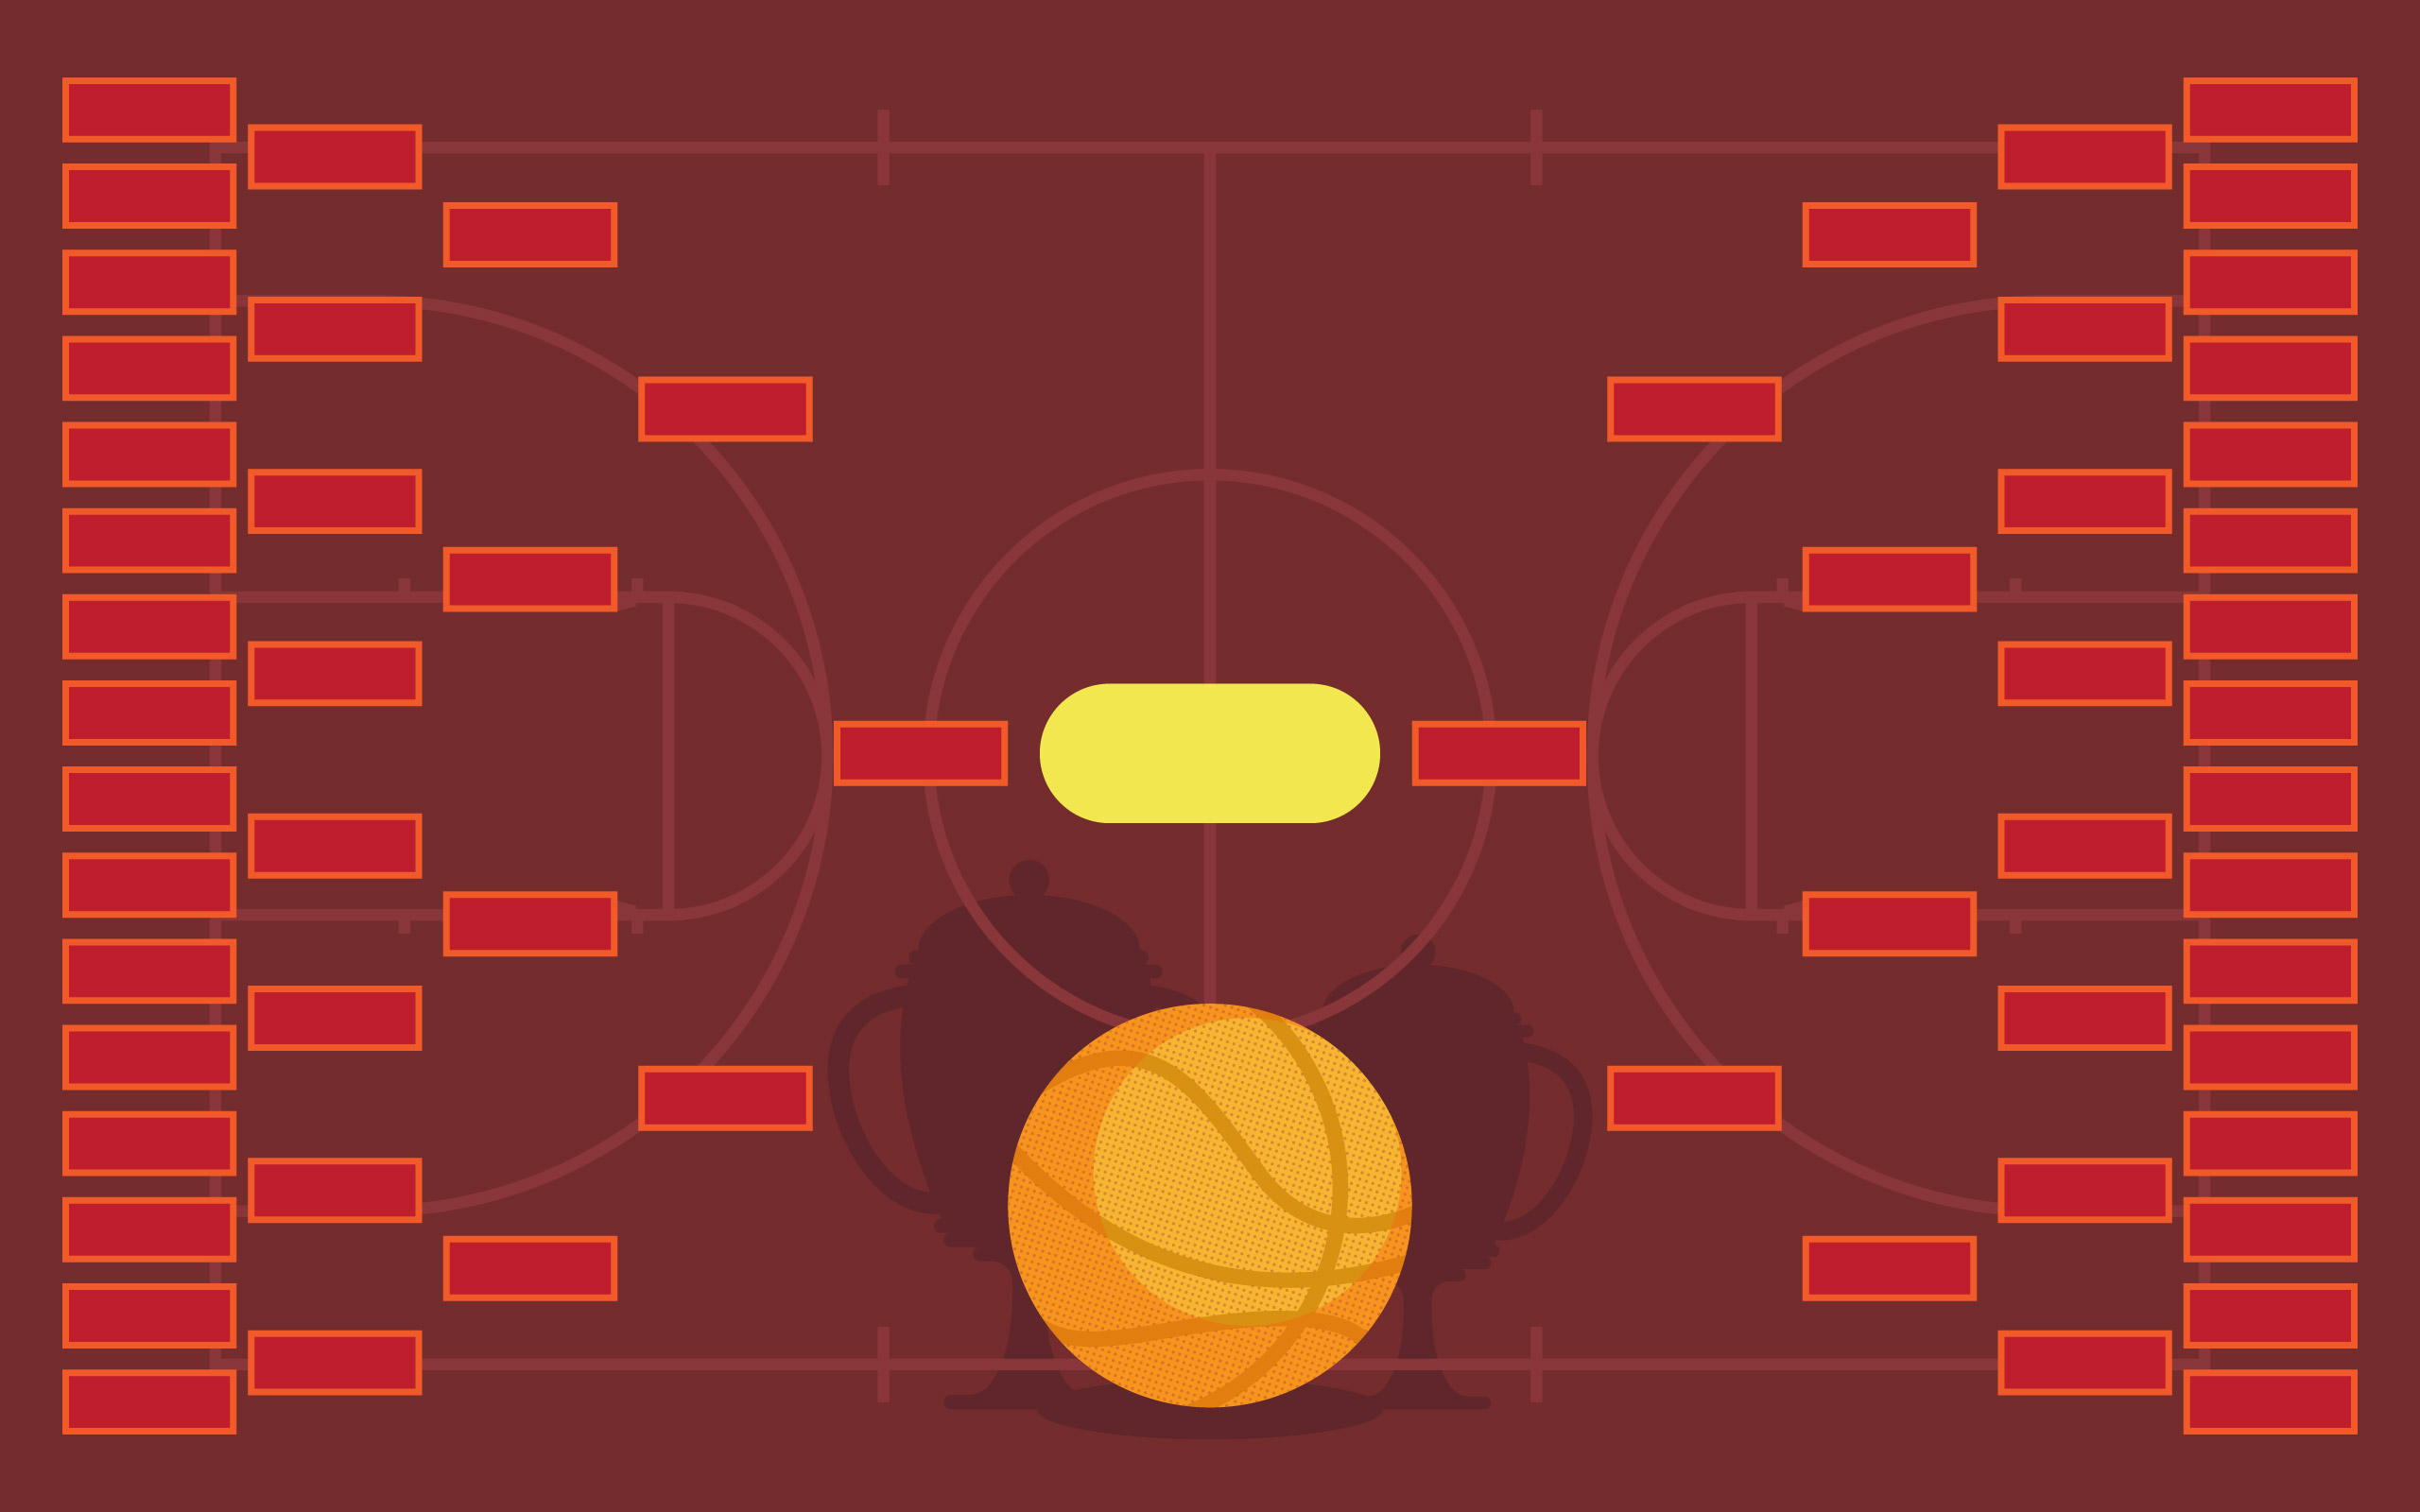 Basketball Tournament Bracket Poster Template - Download Free Vector Art,  Stock Graphics & Images